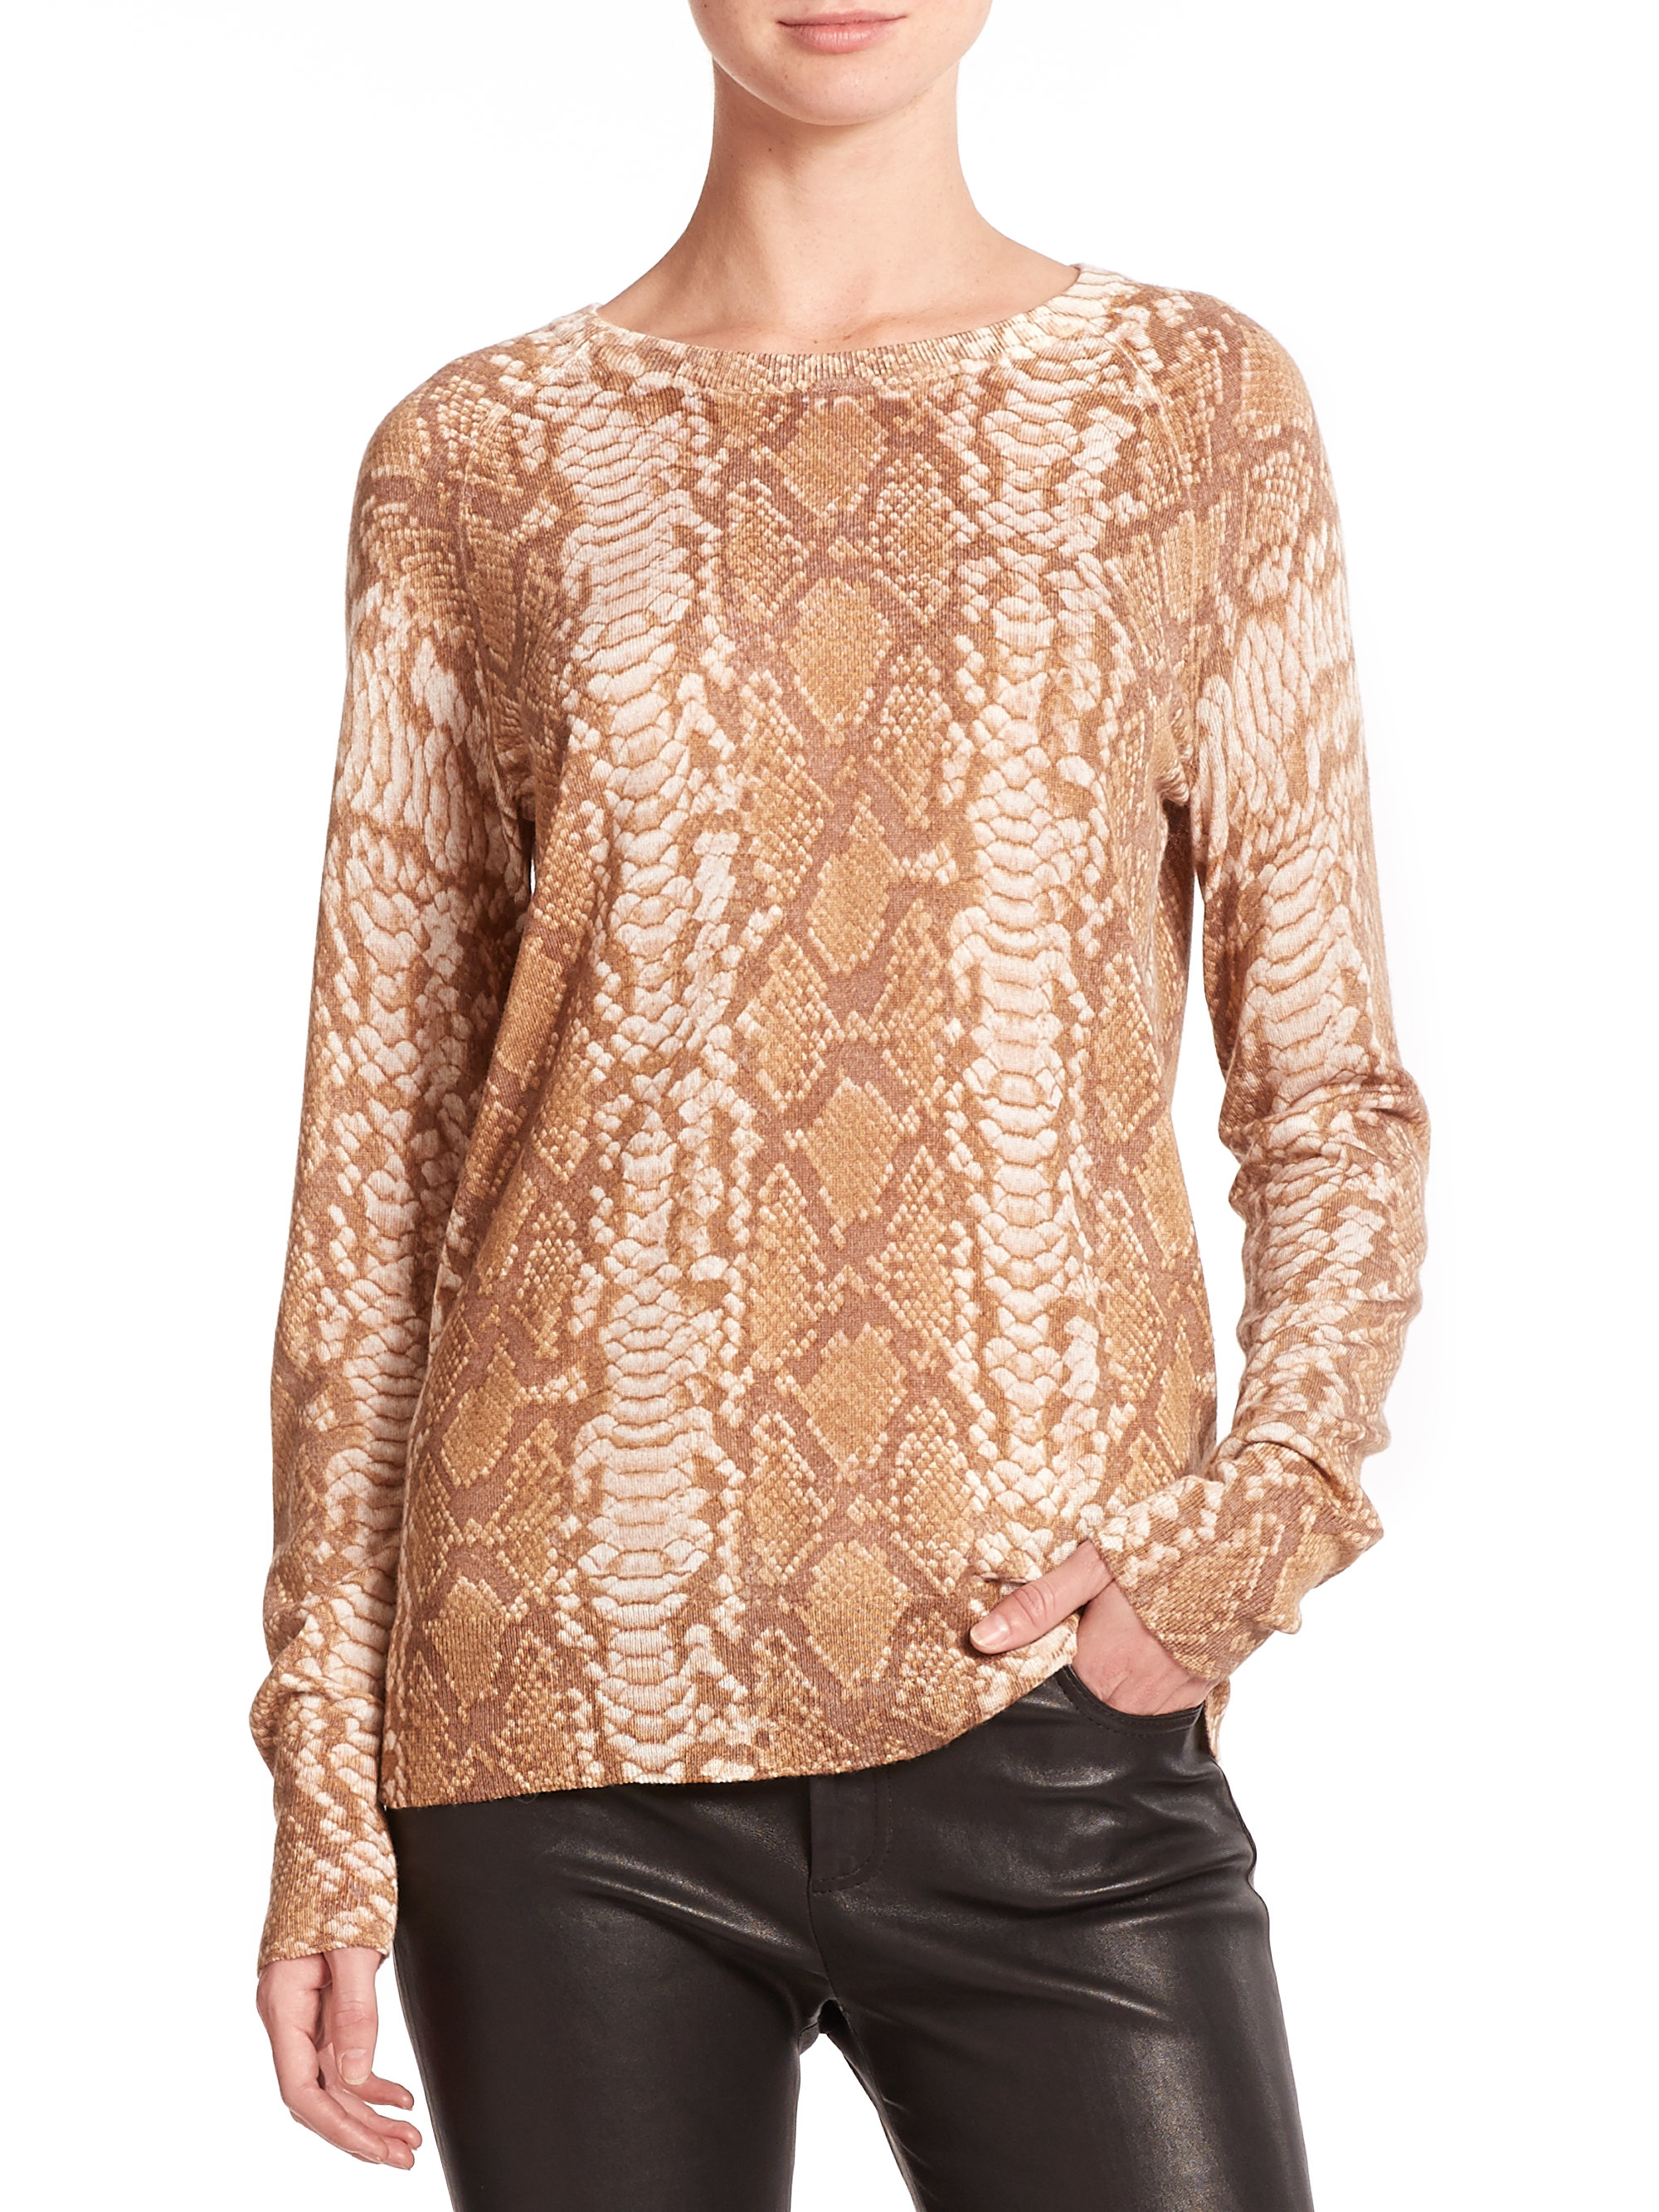 Equipment Sloan Printed Cashmere Sweater in Natural | Lyst